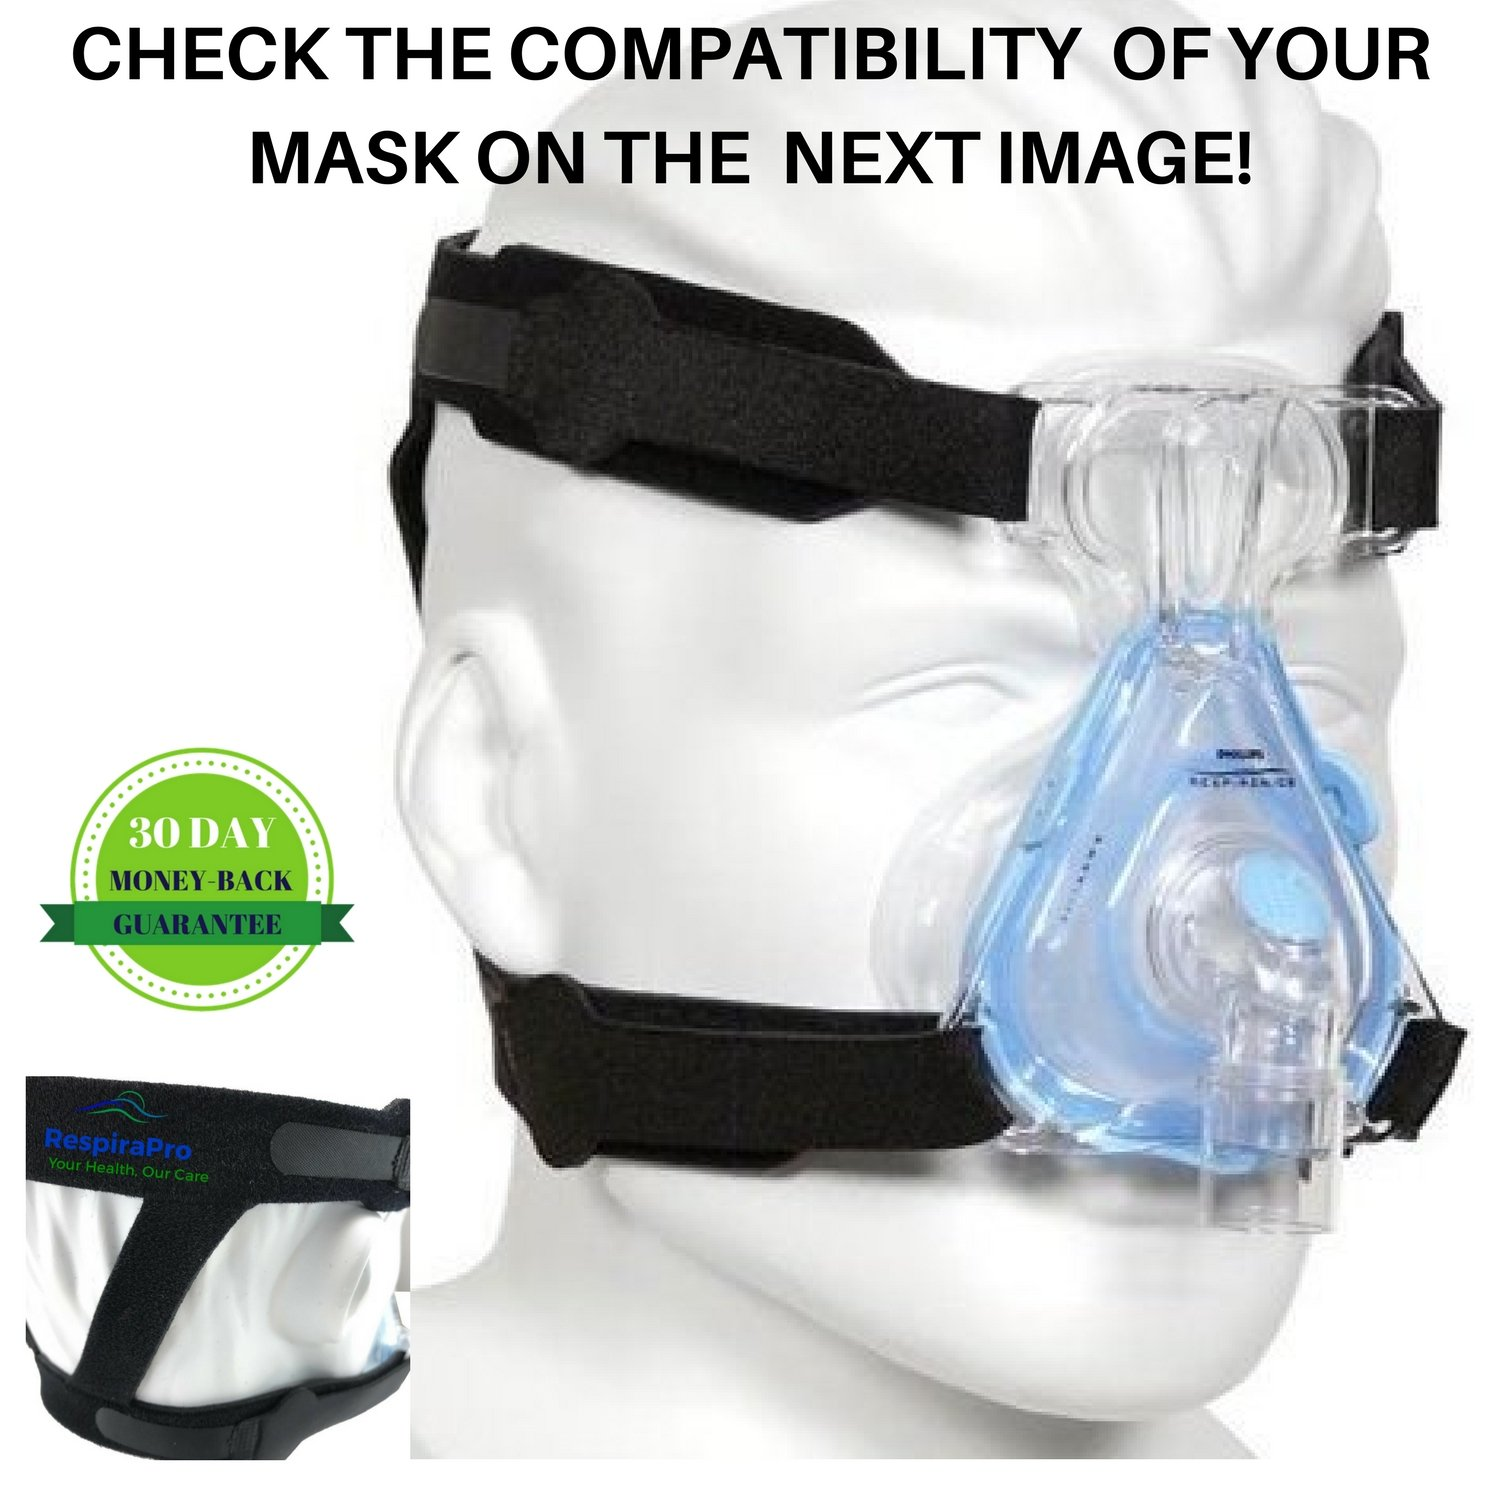 CPAP Headgear Strap Universal ResMed & Respironics Replace Strap - Ultimate Comfort & Perfect Fit - for Most CPAP/BIPAP Full Face & Nasal Apnea Masks *Headgear Only, No Mask and Clips Included*